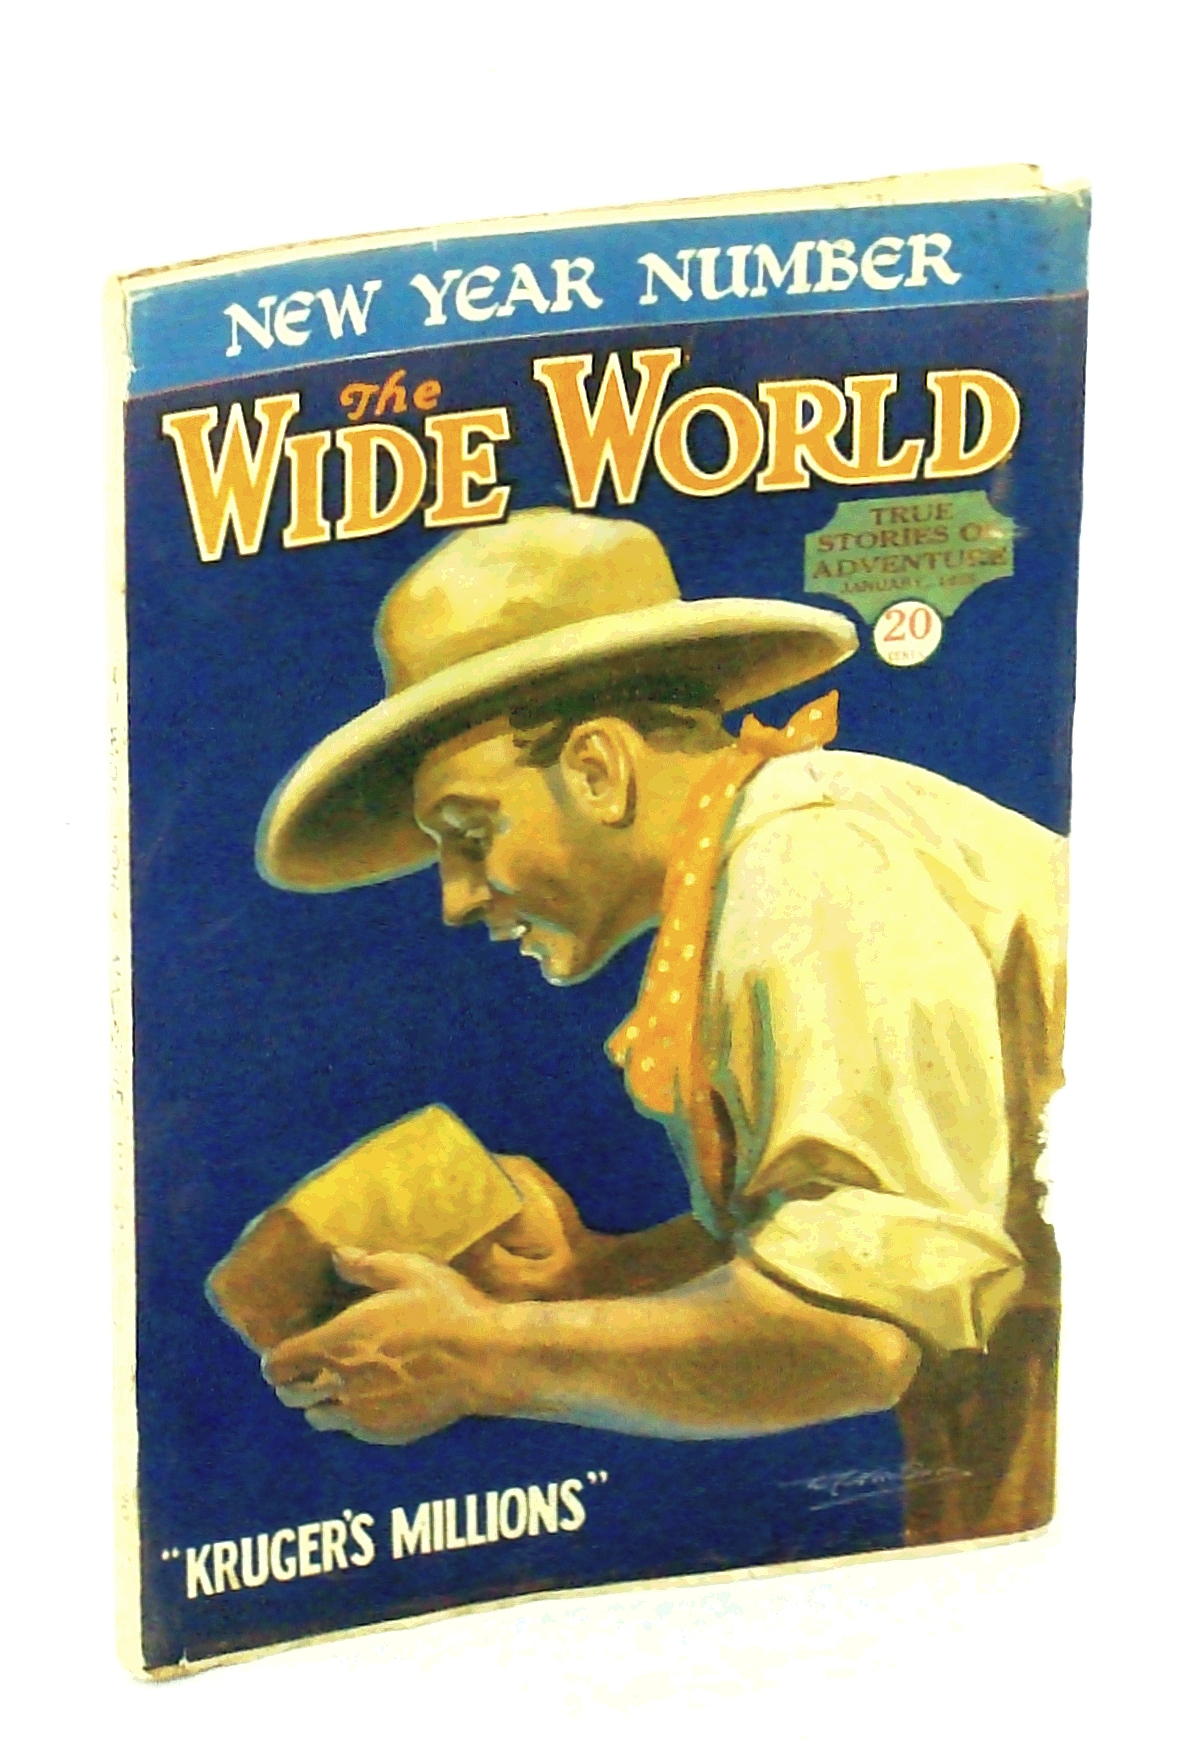 Image for The Wide World Magazine - True Stories of Adventure, January [Jan.] 1928, Vol. LX, No. 357: Through Arctic Seas / Across Central Africa